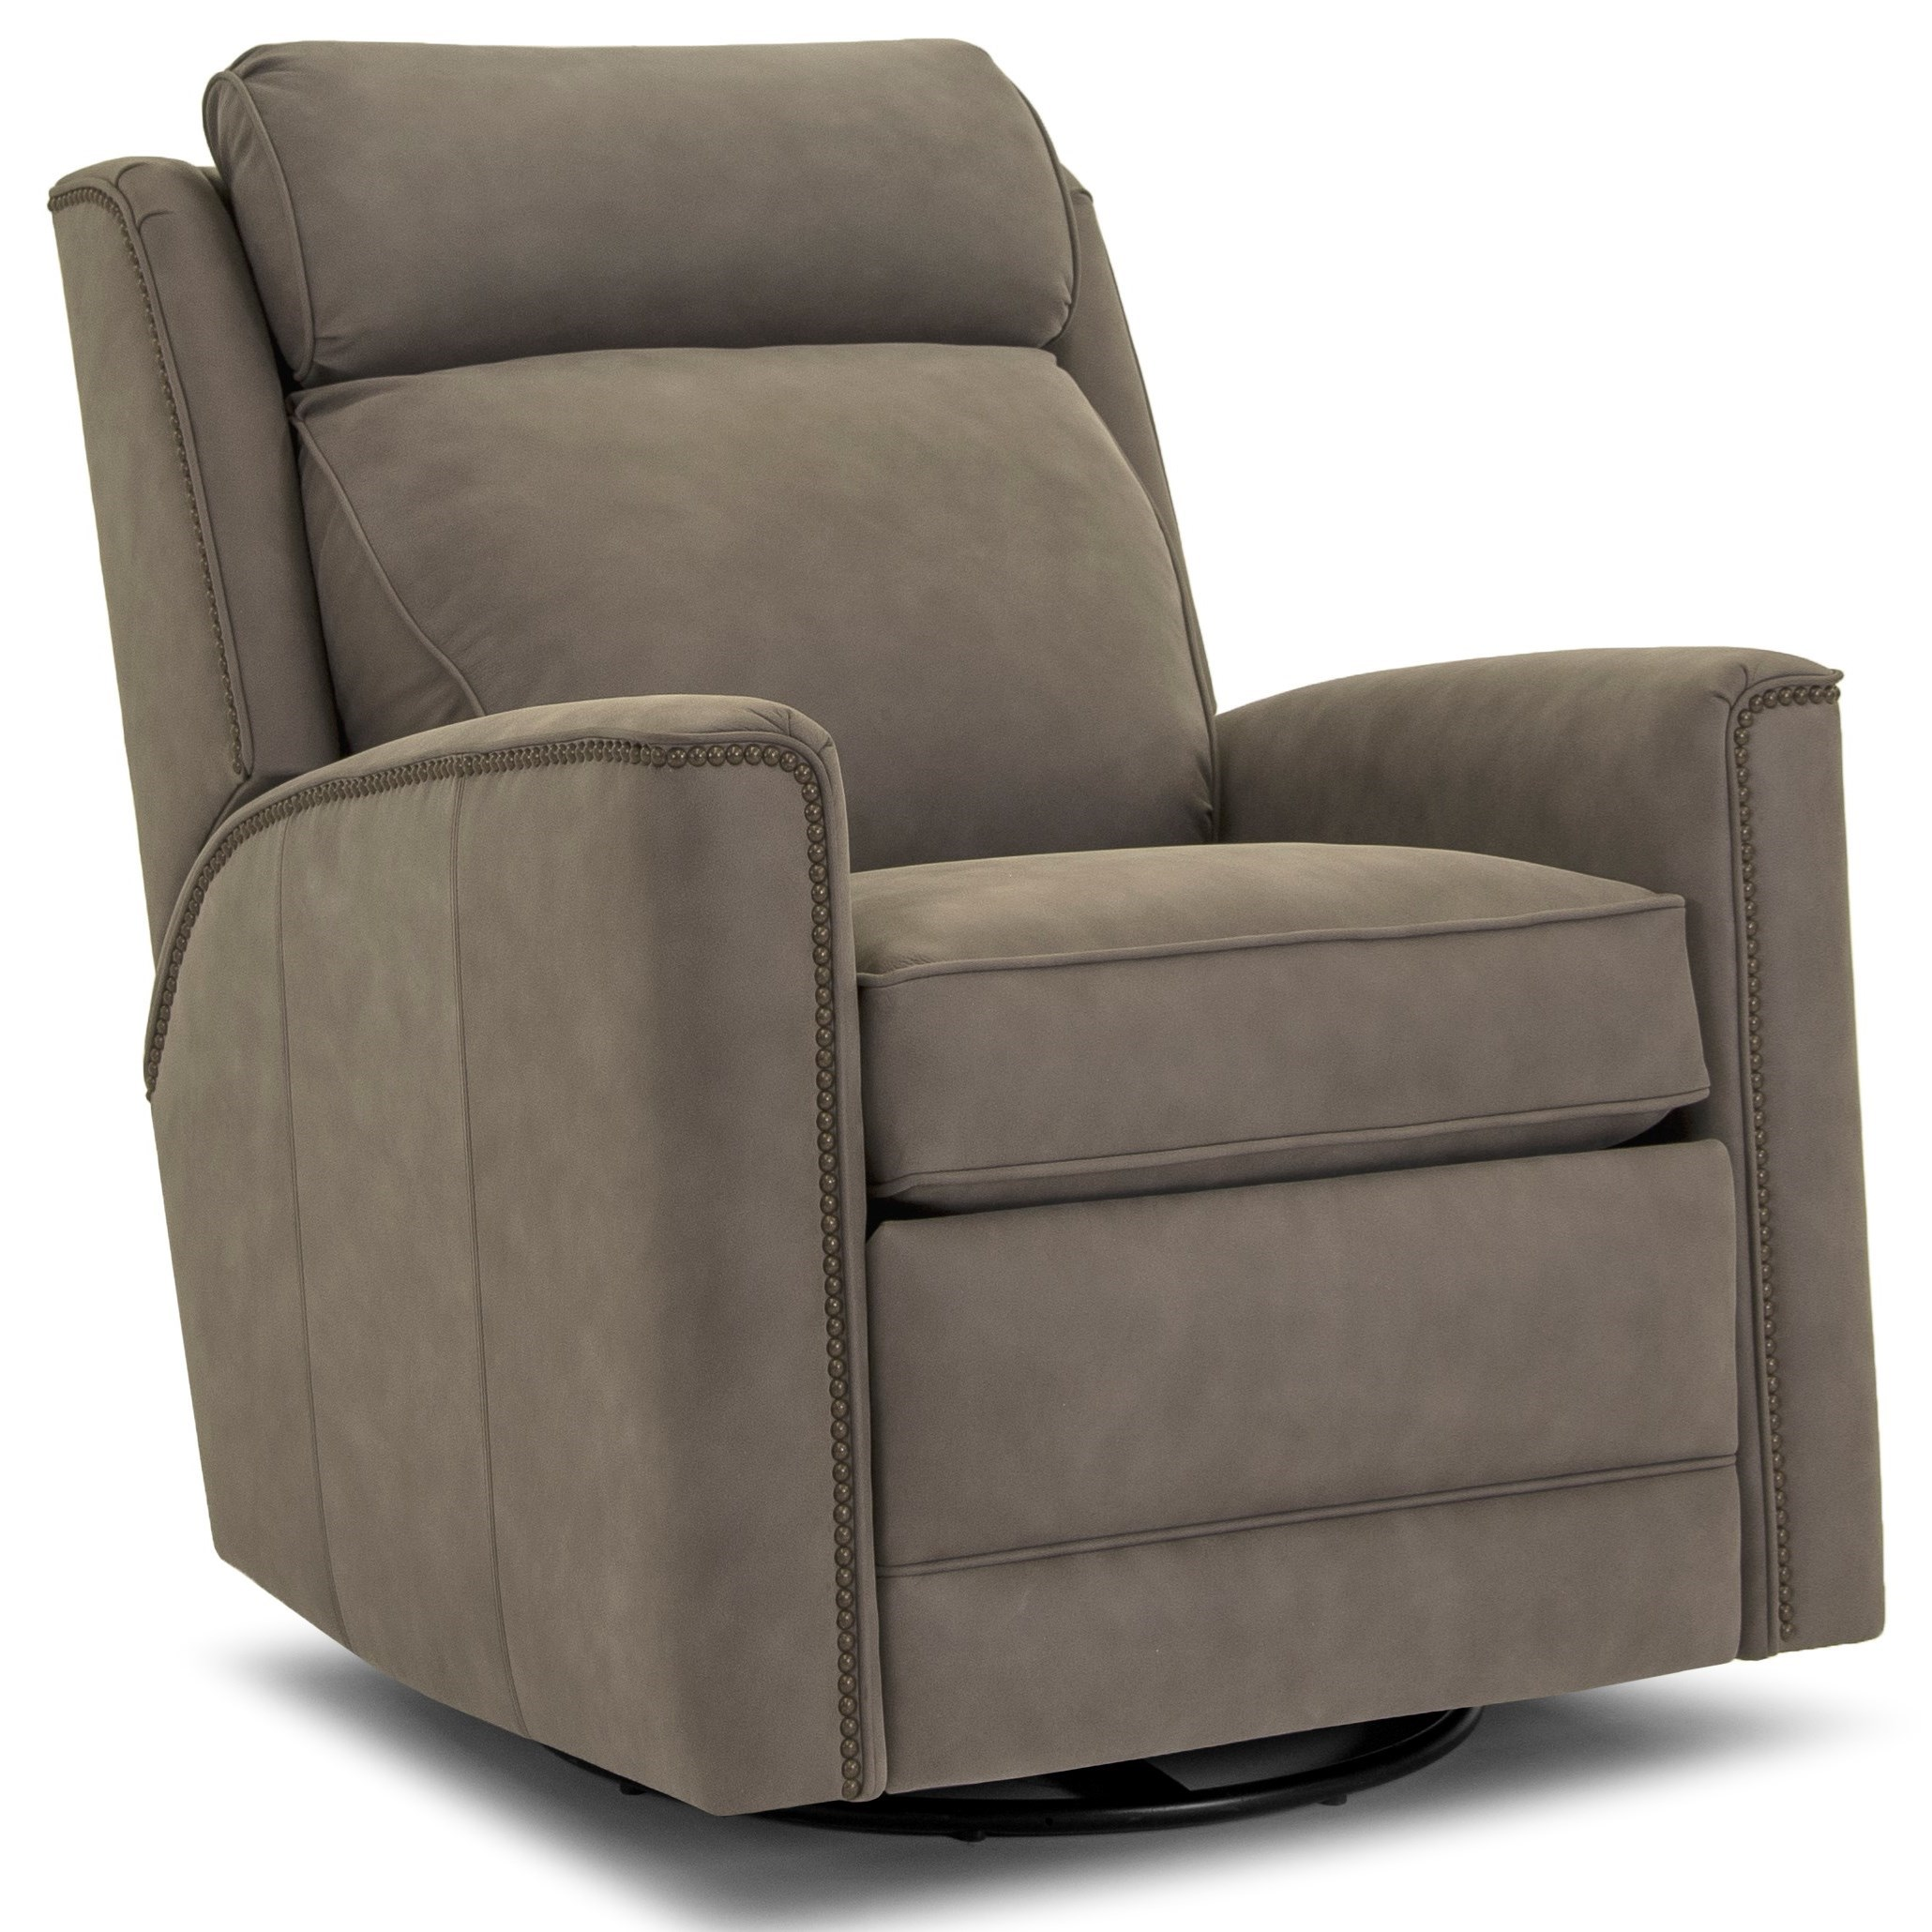 736 Power Recliner by Smith Brothers at Gill Brothers Furniture